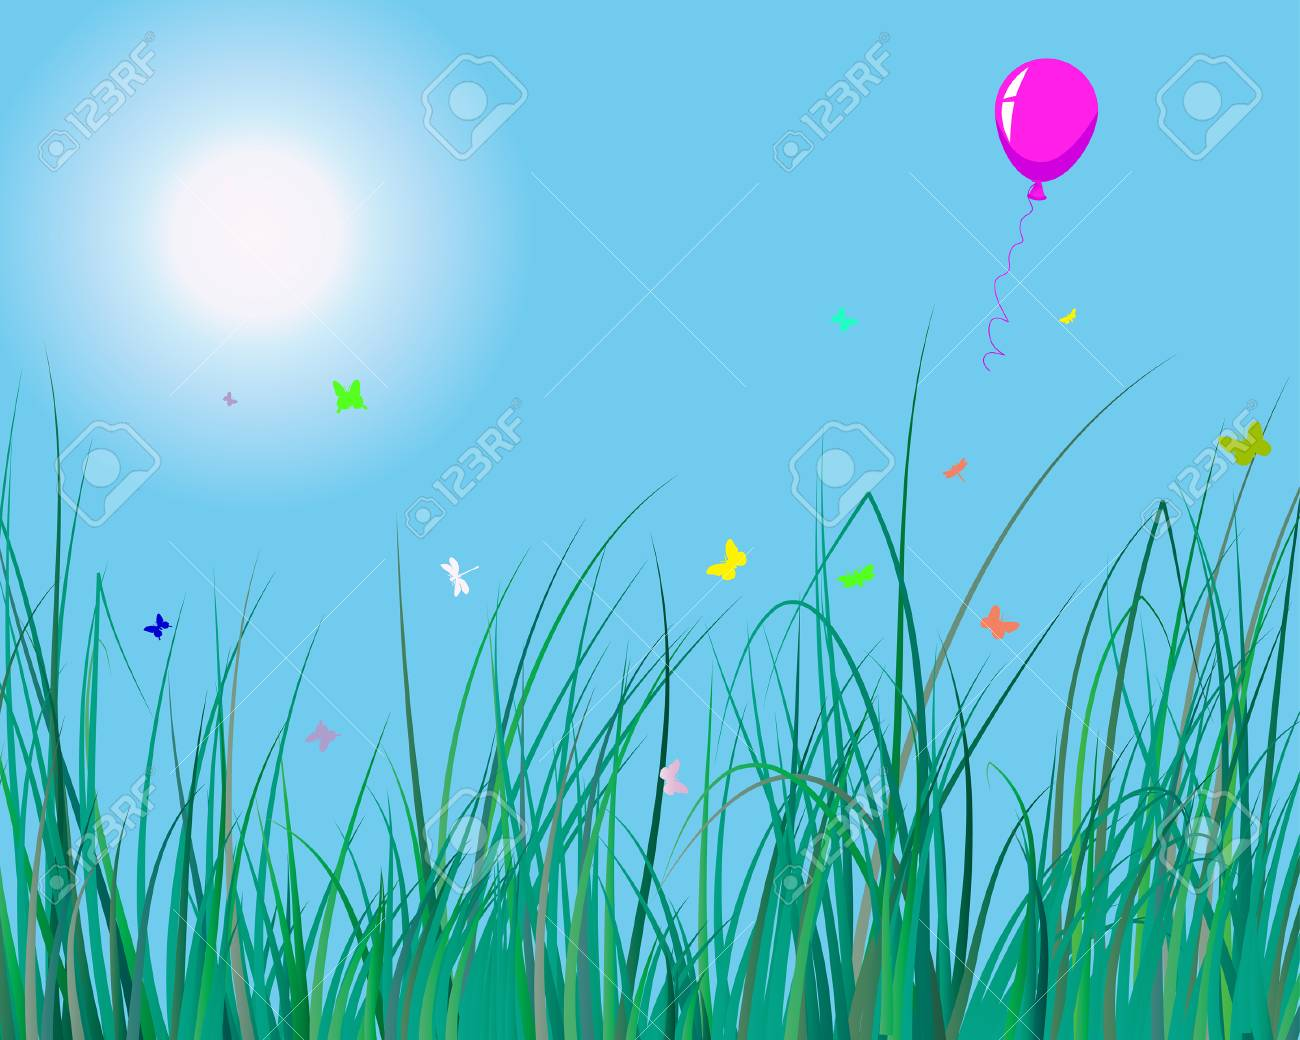 Vector illustration of grass background with balloon for design usage Stock Vector - 4455174